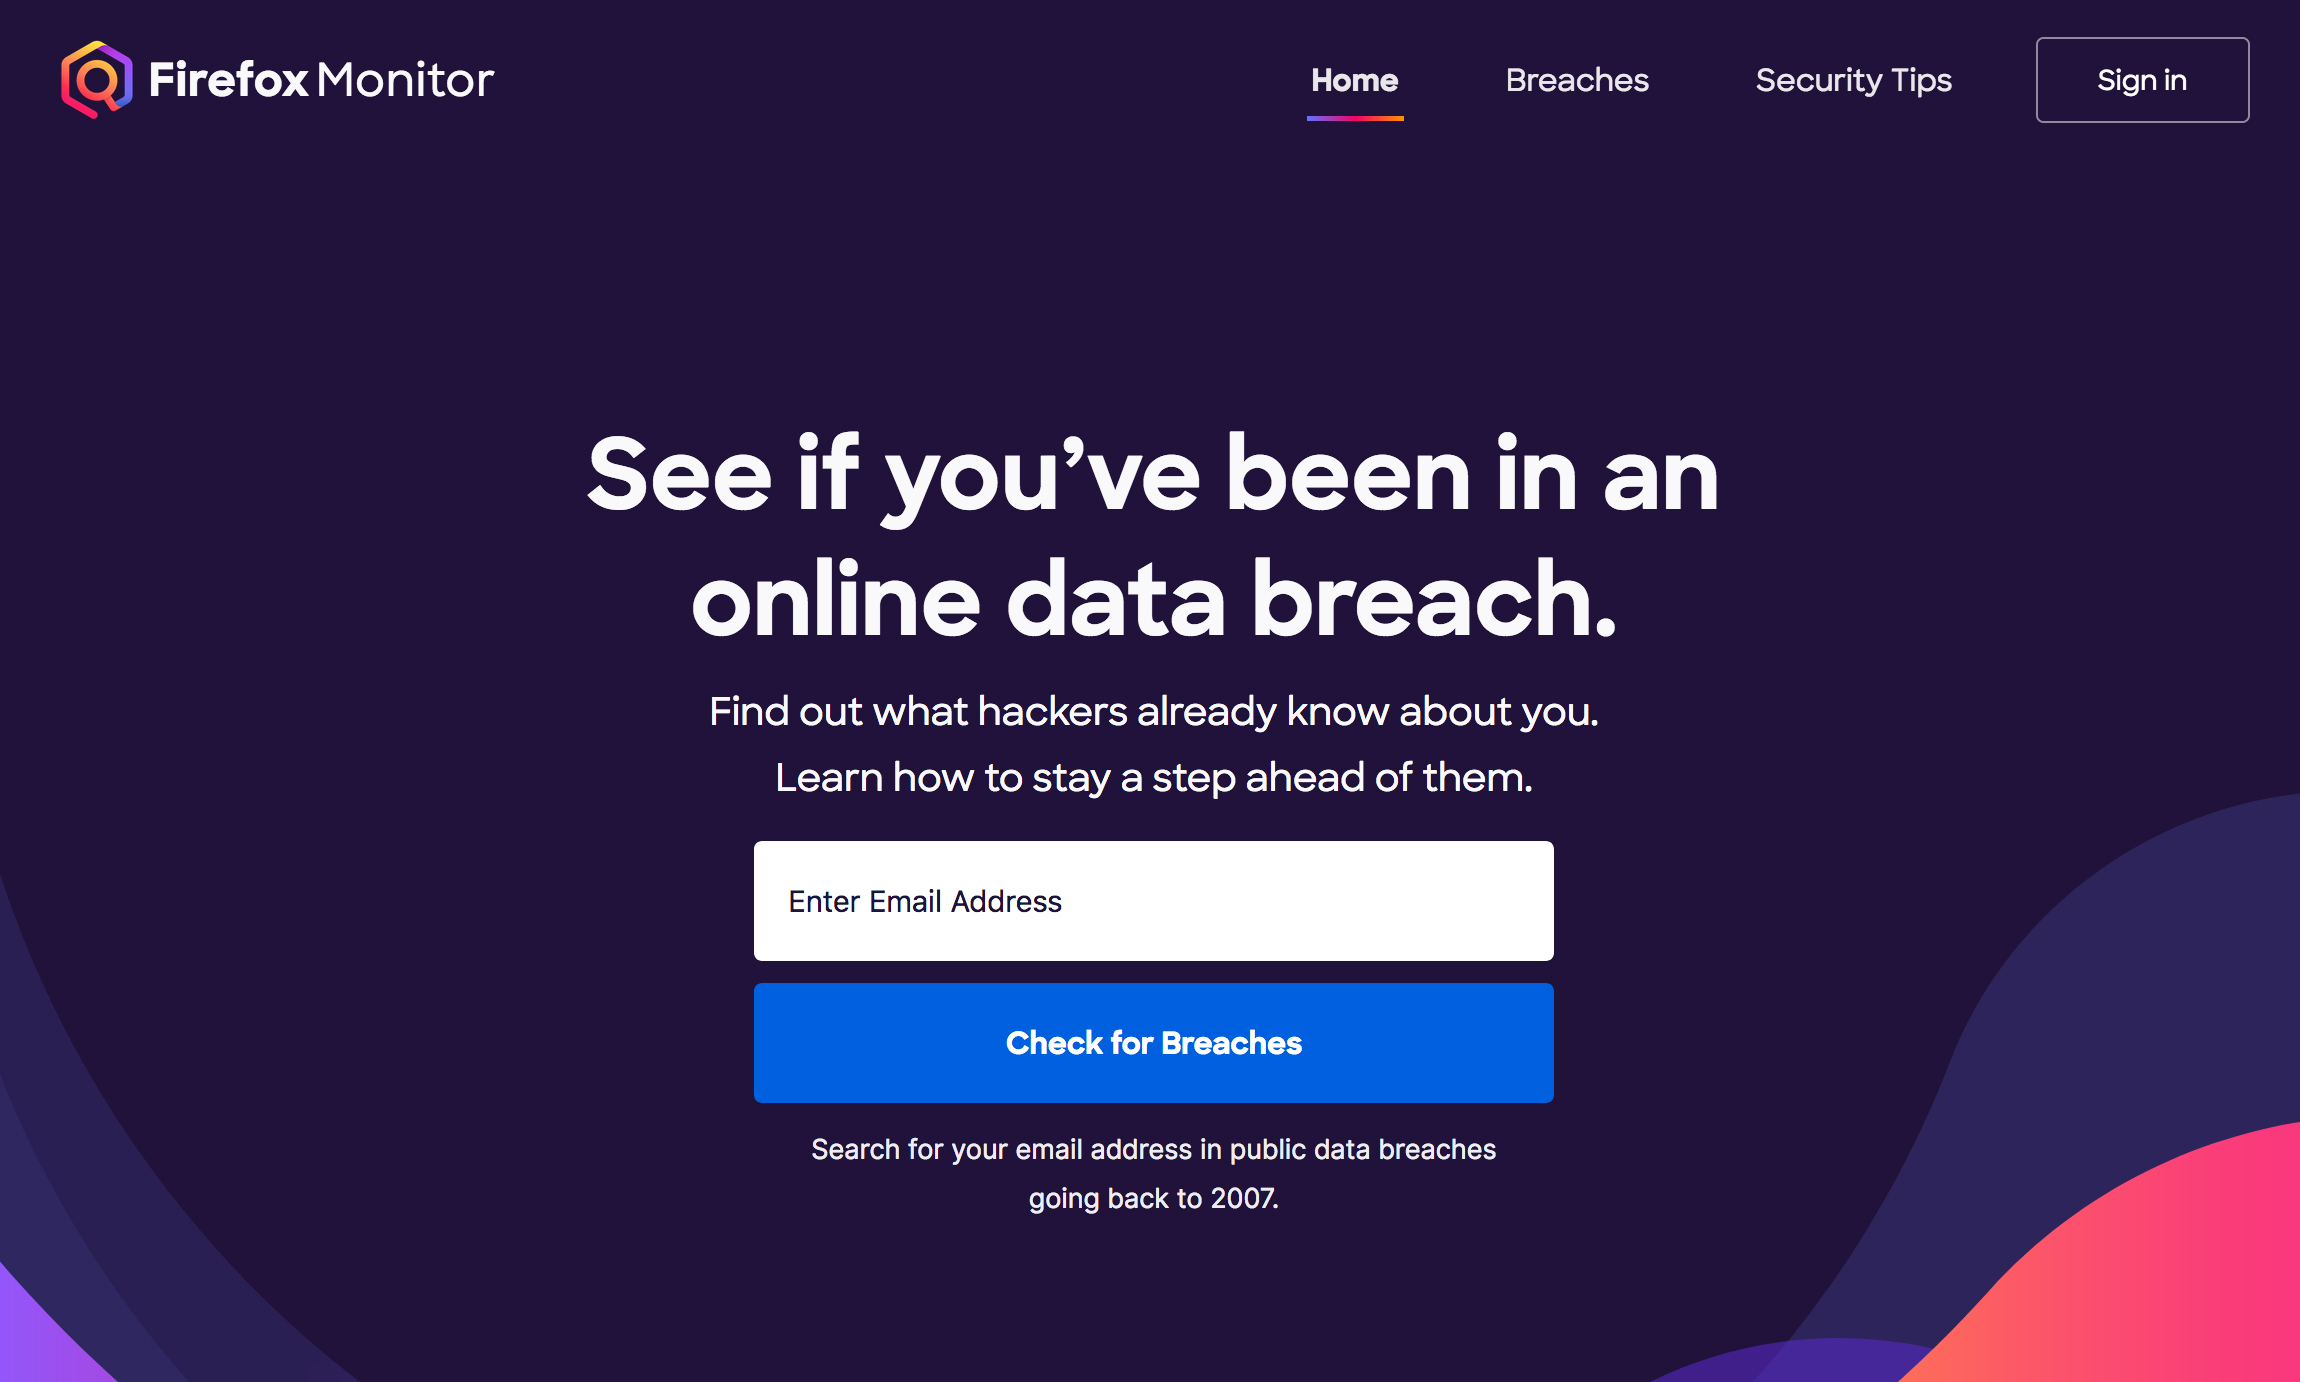 Mozilla Announces Interesting New Privacy and Security Features To